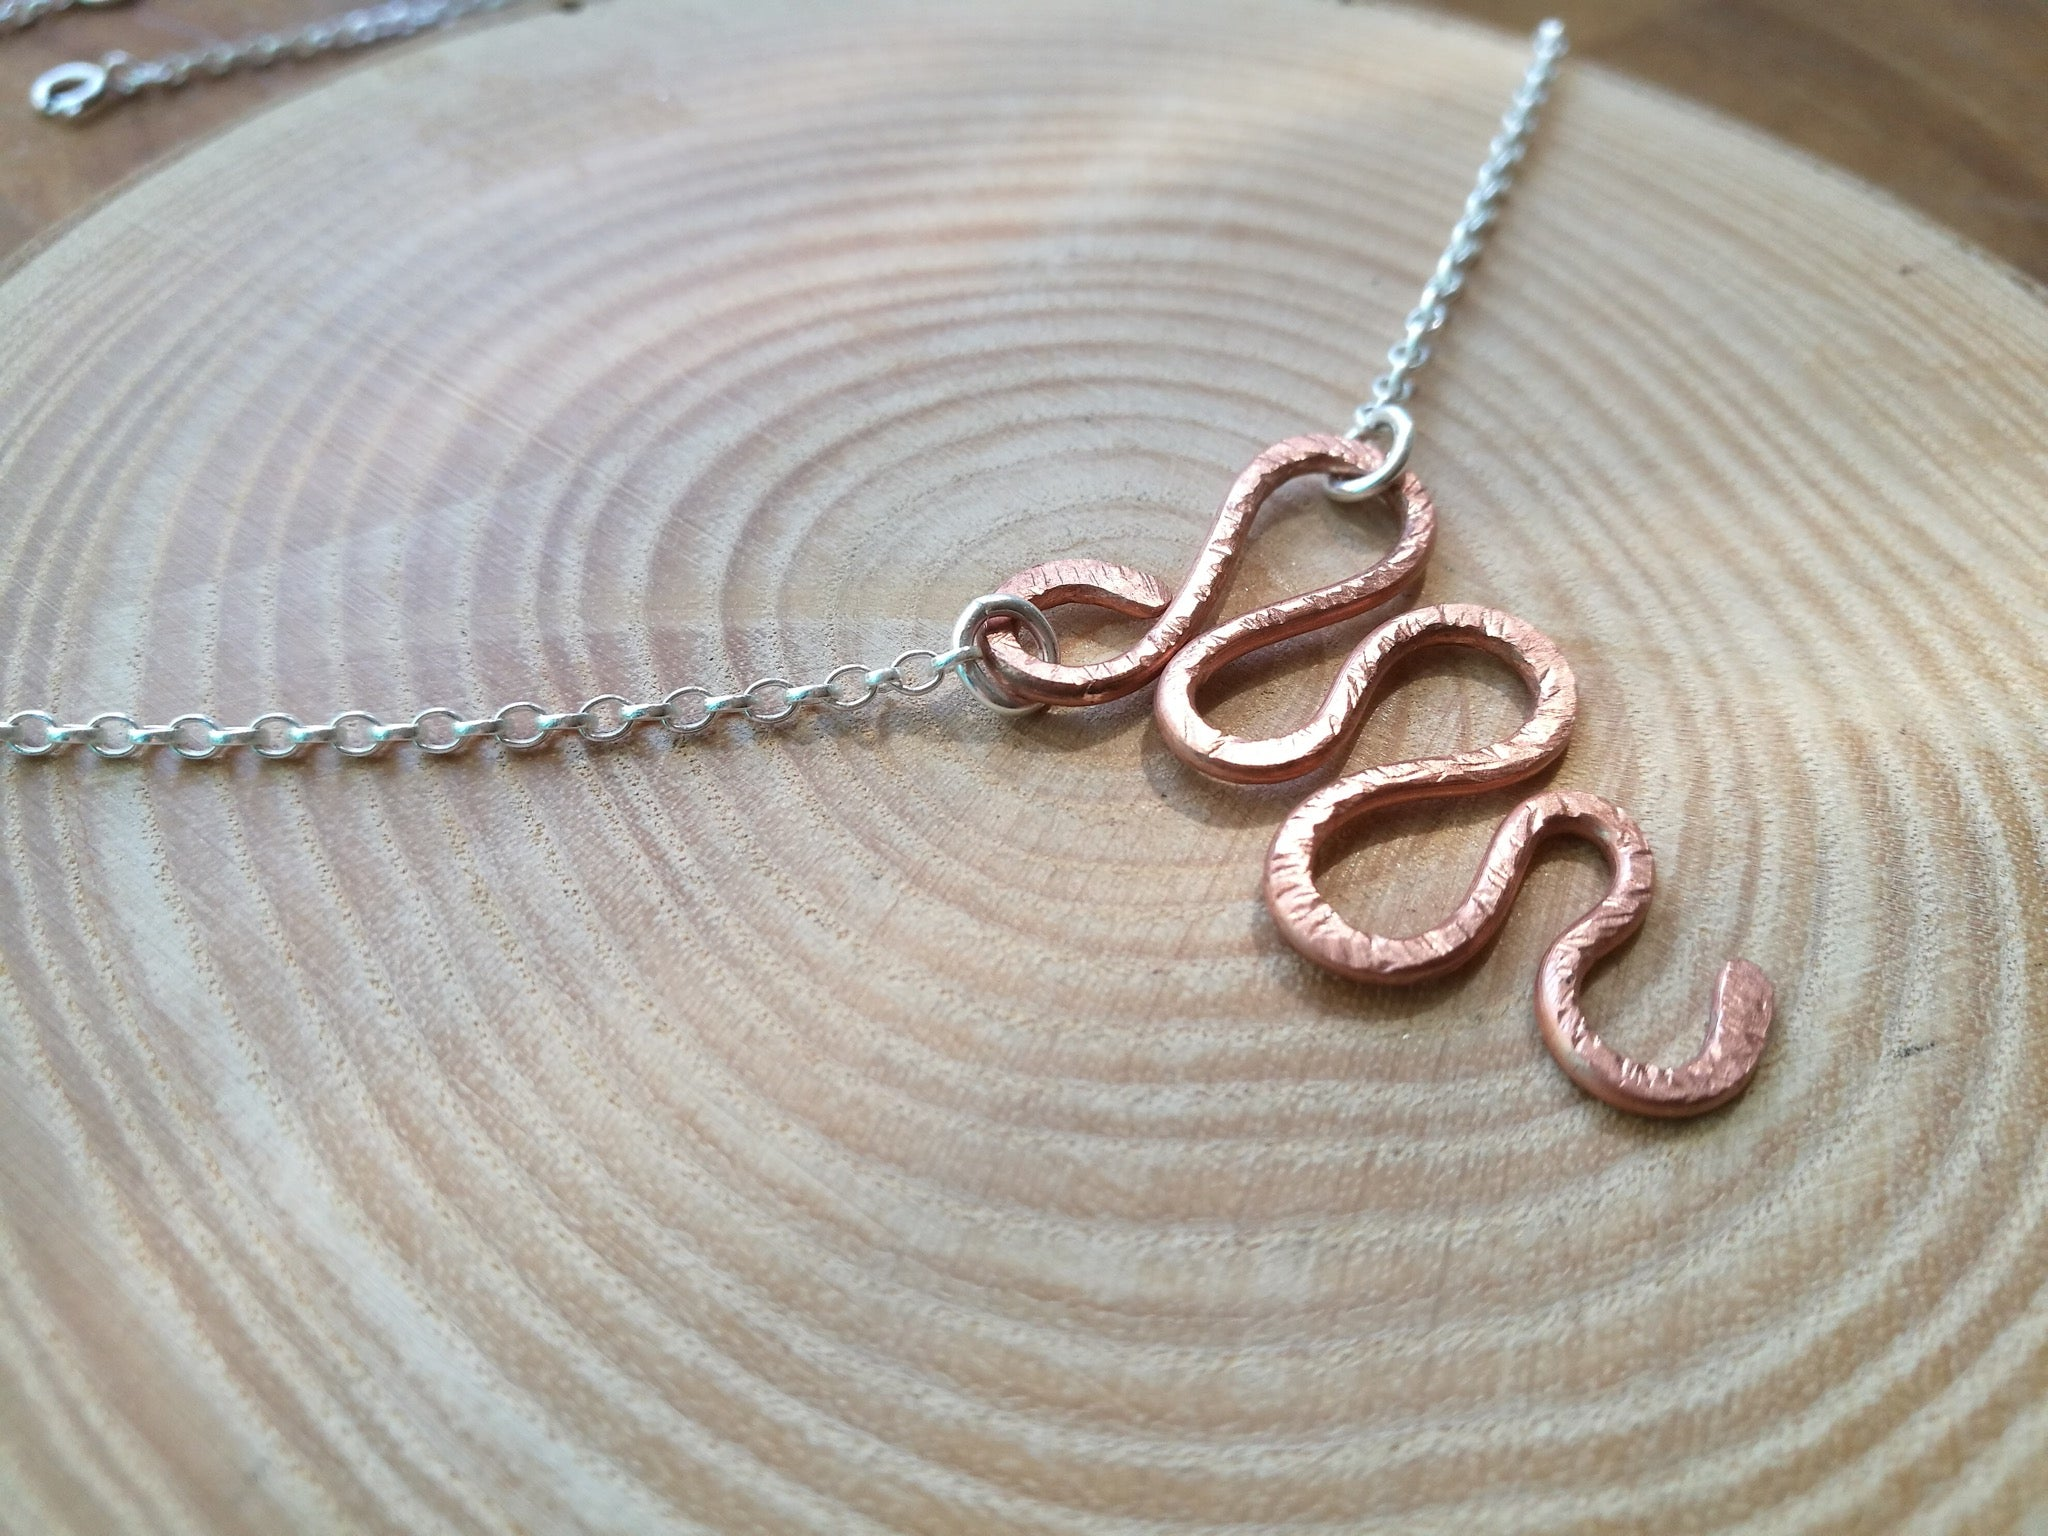 Handmade Sterling Silver rolo chain Necklace, with Copper swirl pendant